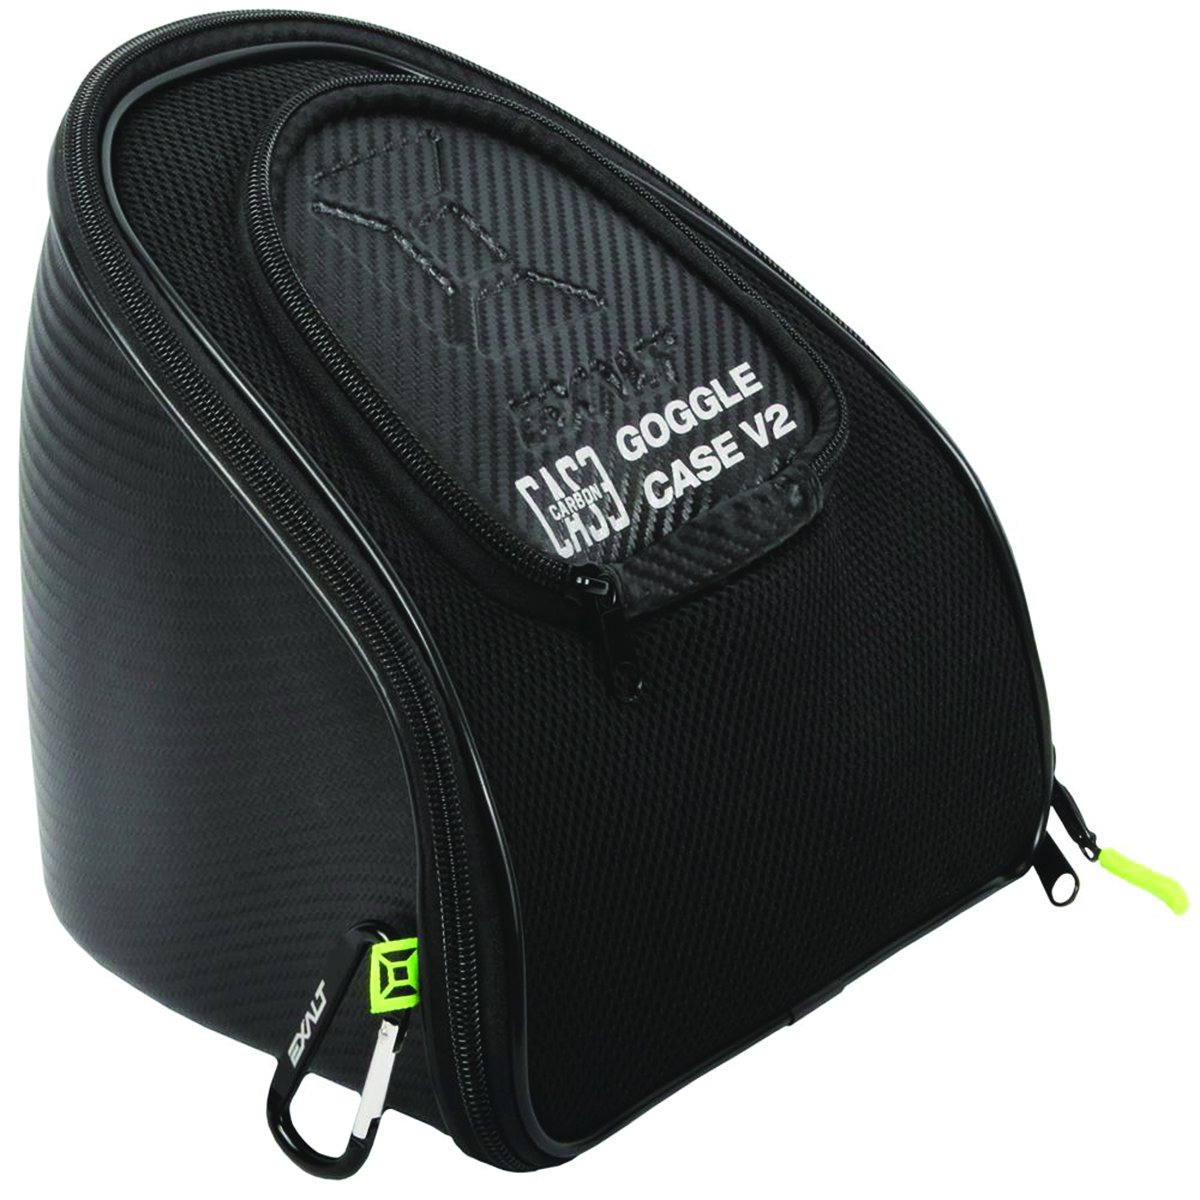 Exalt Paintball Carbon Series Goggle Case V2 - Black / Lime